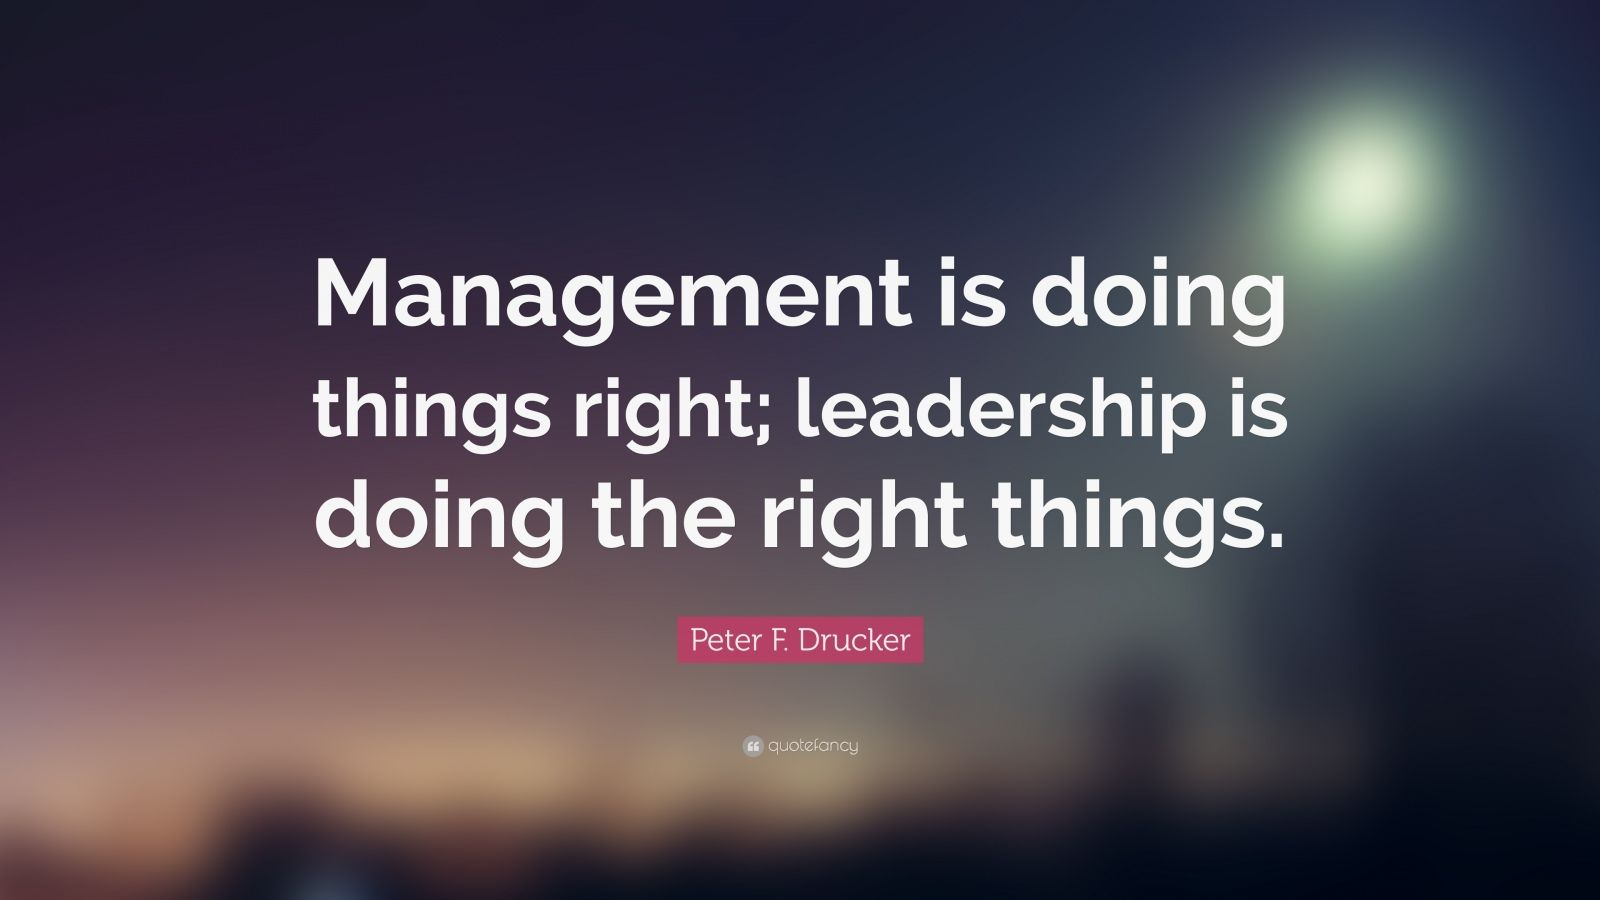 Elon Musk Quotes Wallpaper Peter F Drucker Quote Management Is Doing Things Right